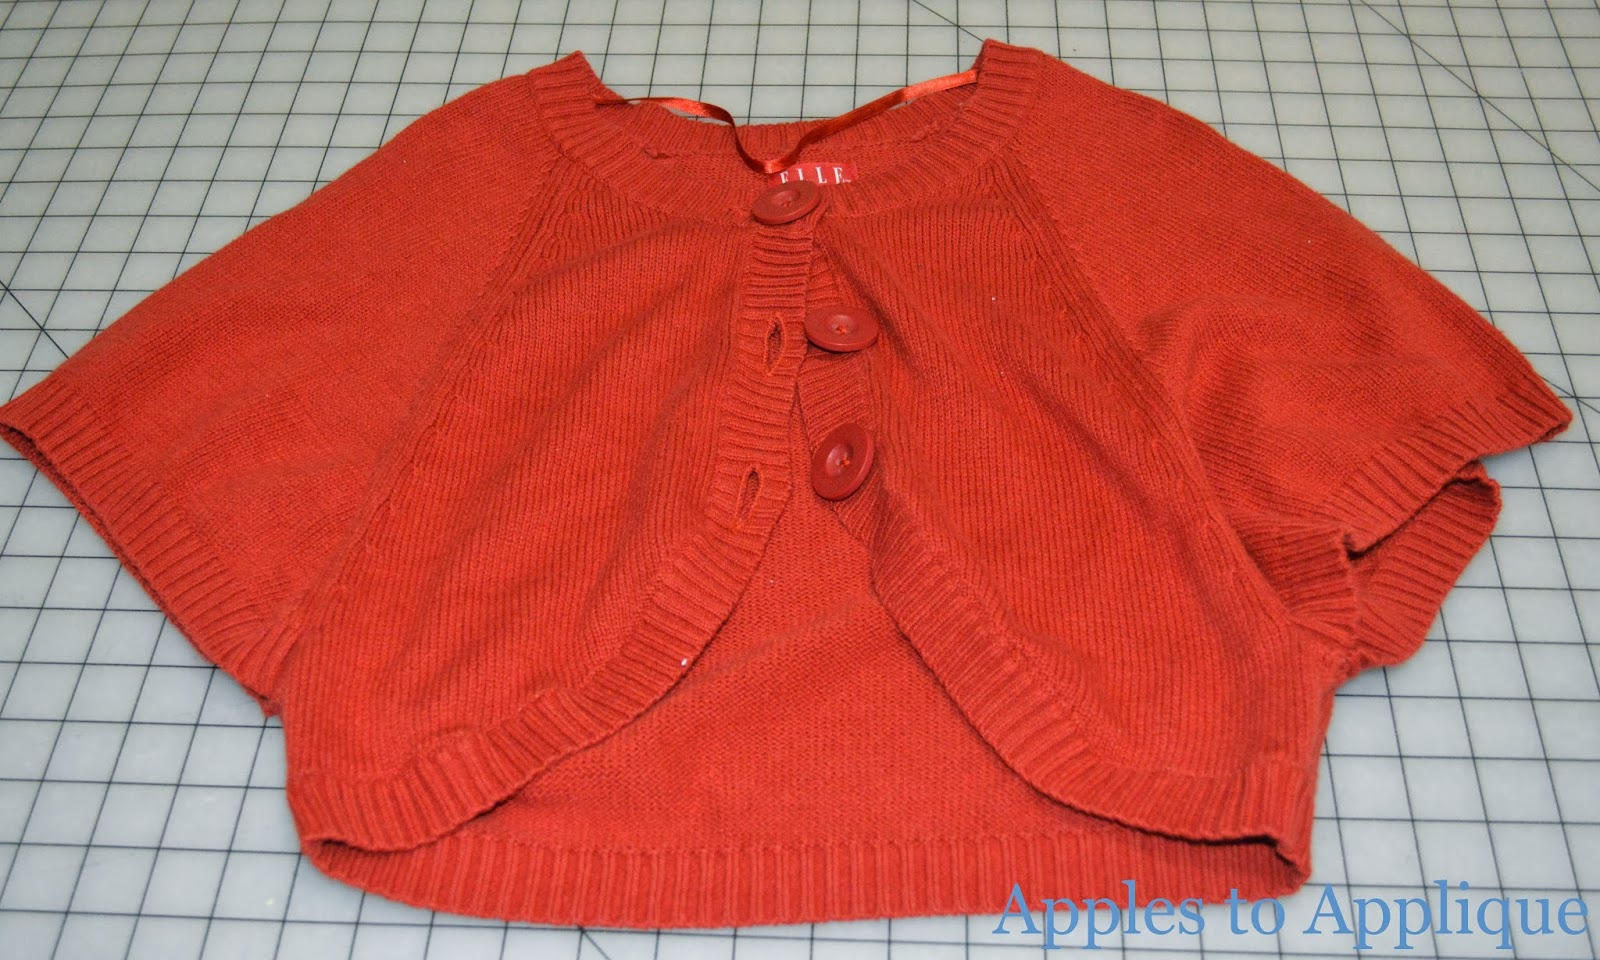 9d458efdd Apples to Applique  Baby Sweater from Old Adult Sweater